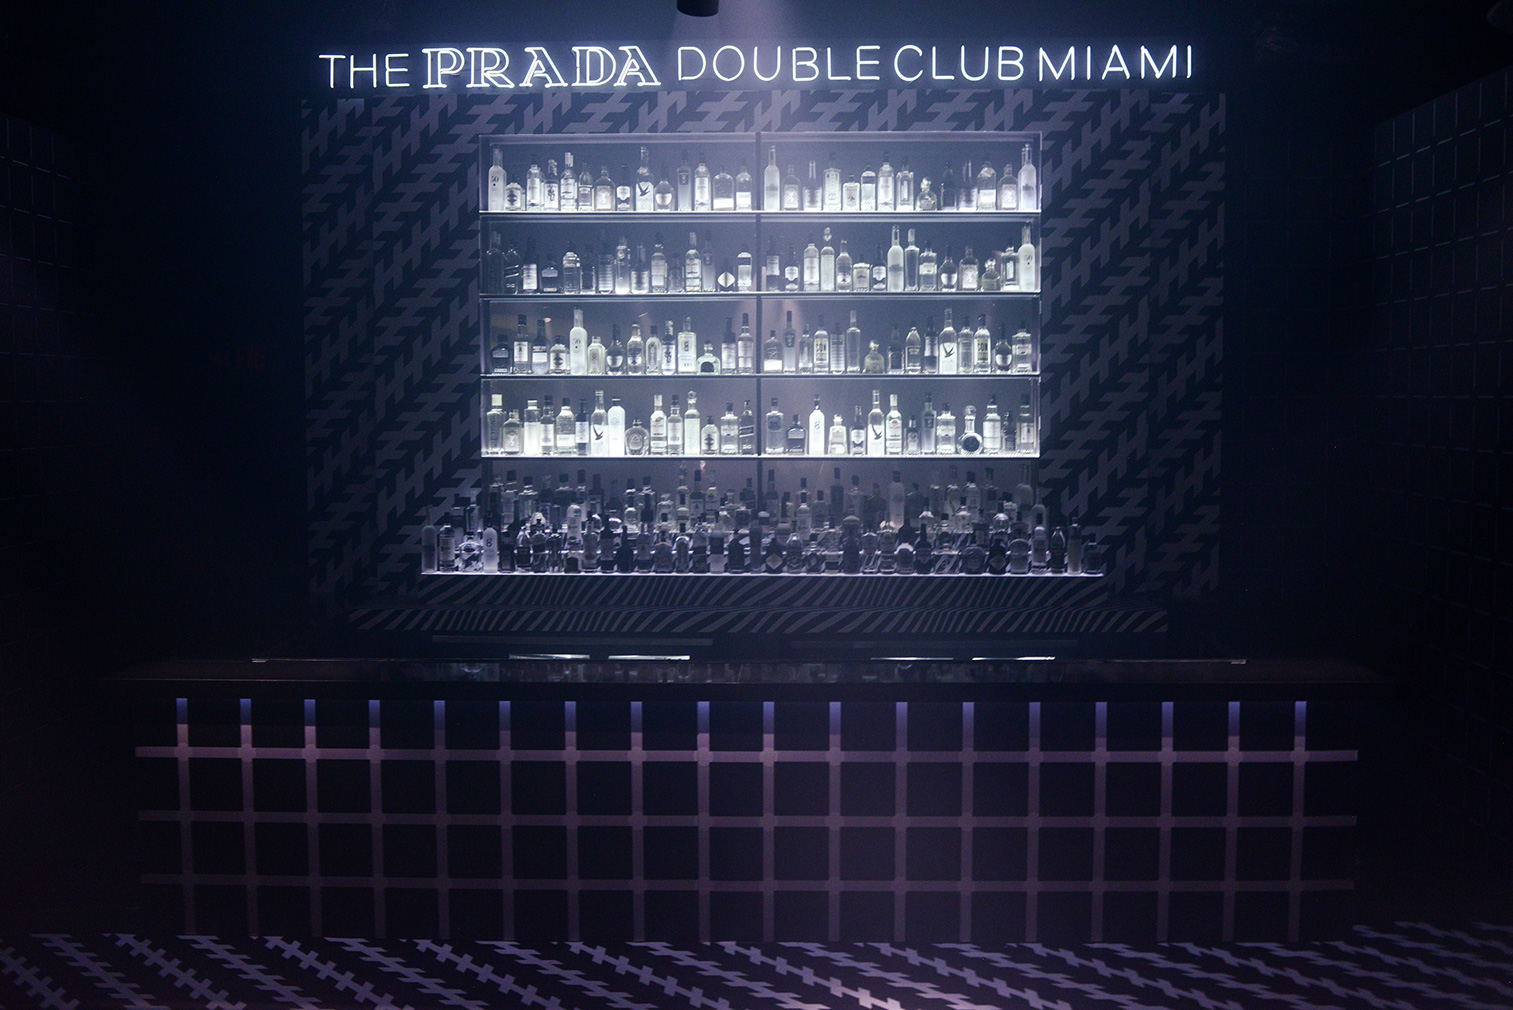 The Prada Double Club Miami by Carsten Höller. Presented by Fondazione Prada Miami, 5-7 December 2017. Photography: Casey Kelbaugh. Courtesy Fondazione Prada